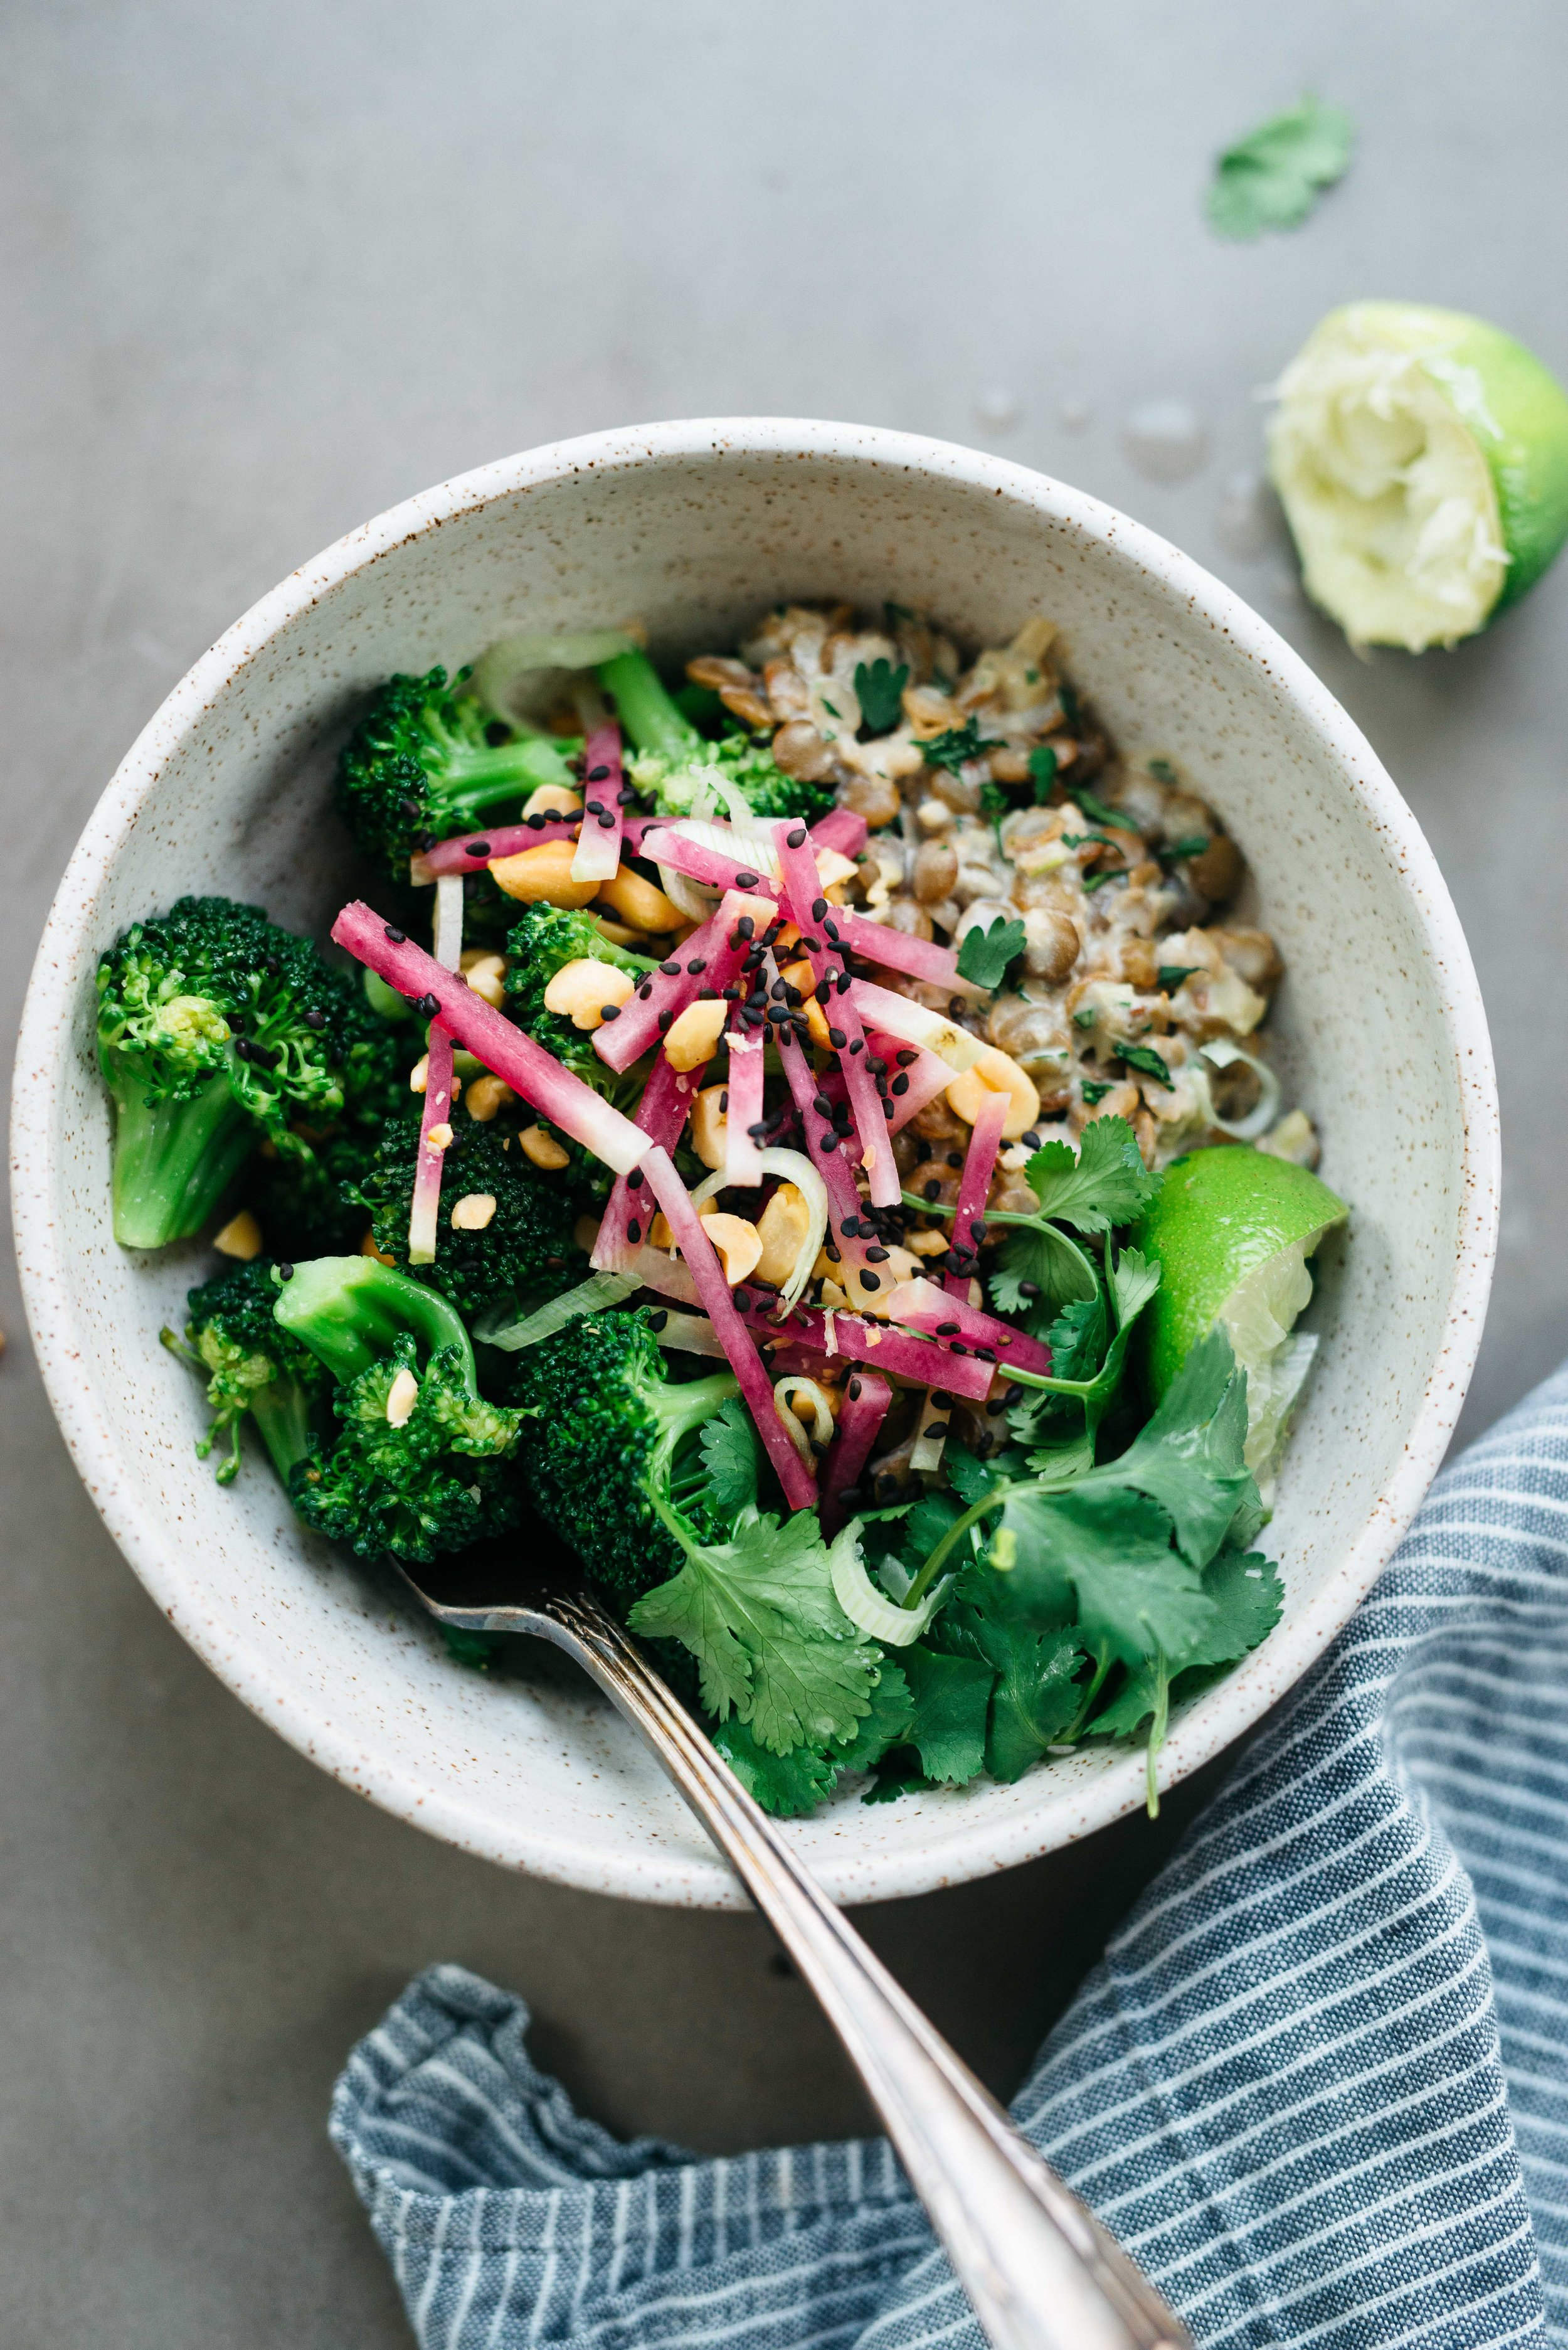 Spicy Broccoli Bowl w/ Creamy Ginger Lentils | Dolly and Oatmeal